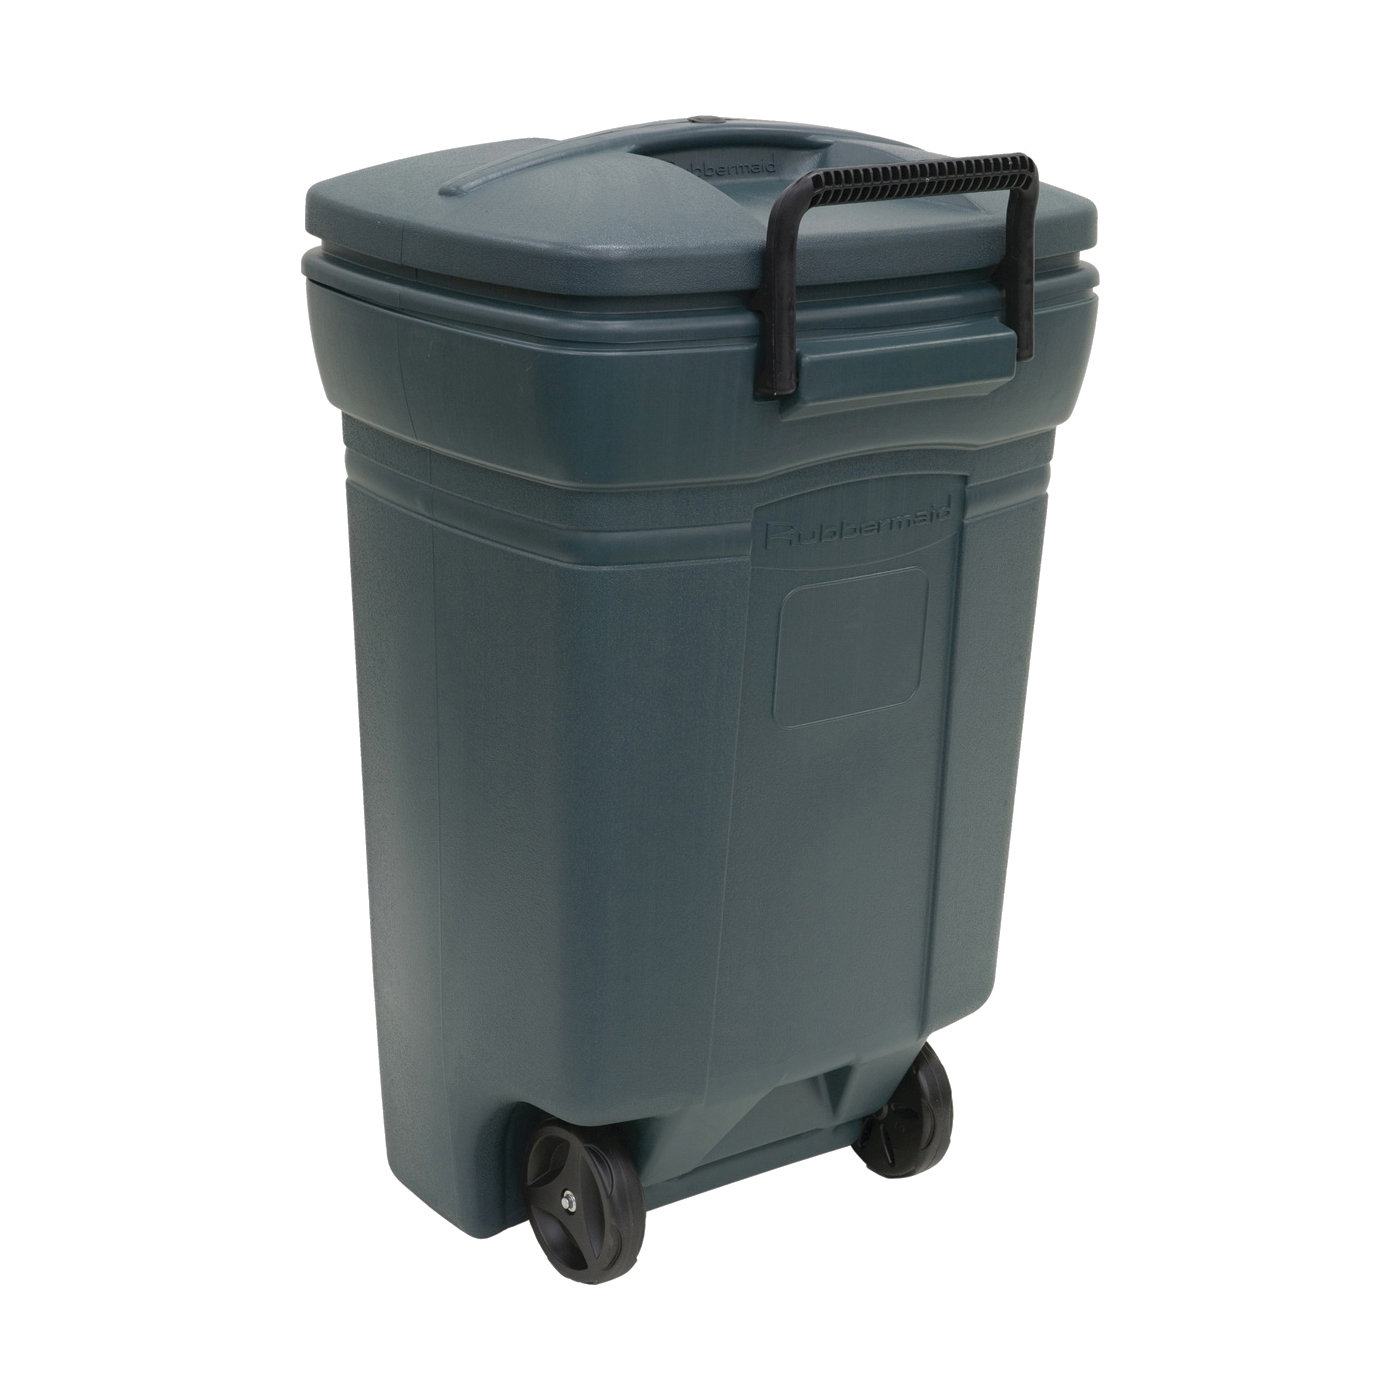 Picture of United Solutions RM134501 Trash Can, 45 gal Capacity, Plastic, Green, Snap-Fit Lid Closure